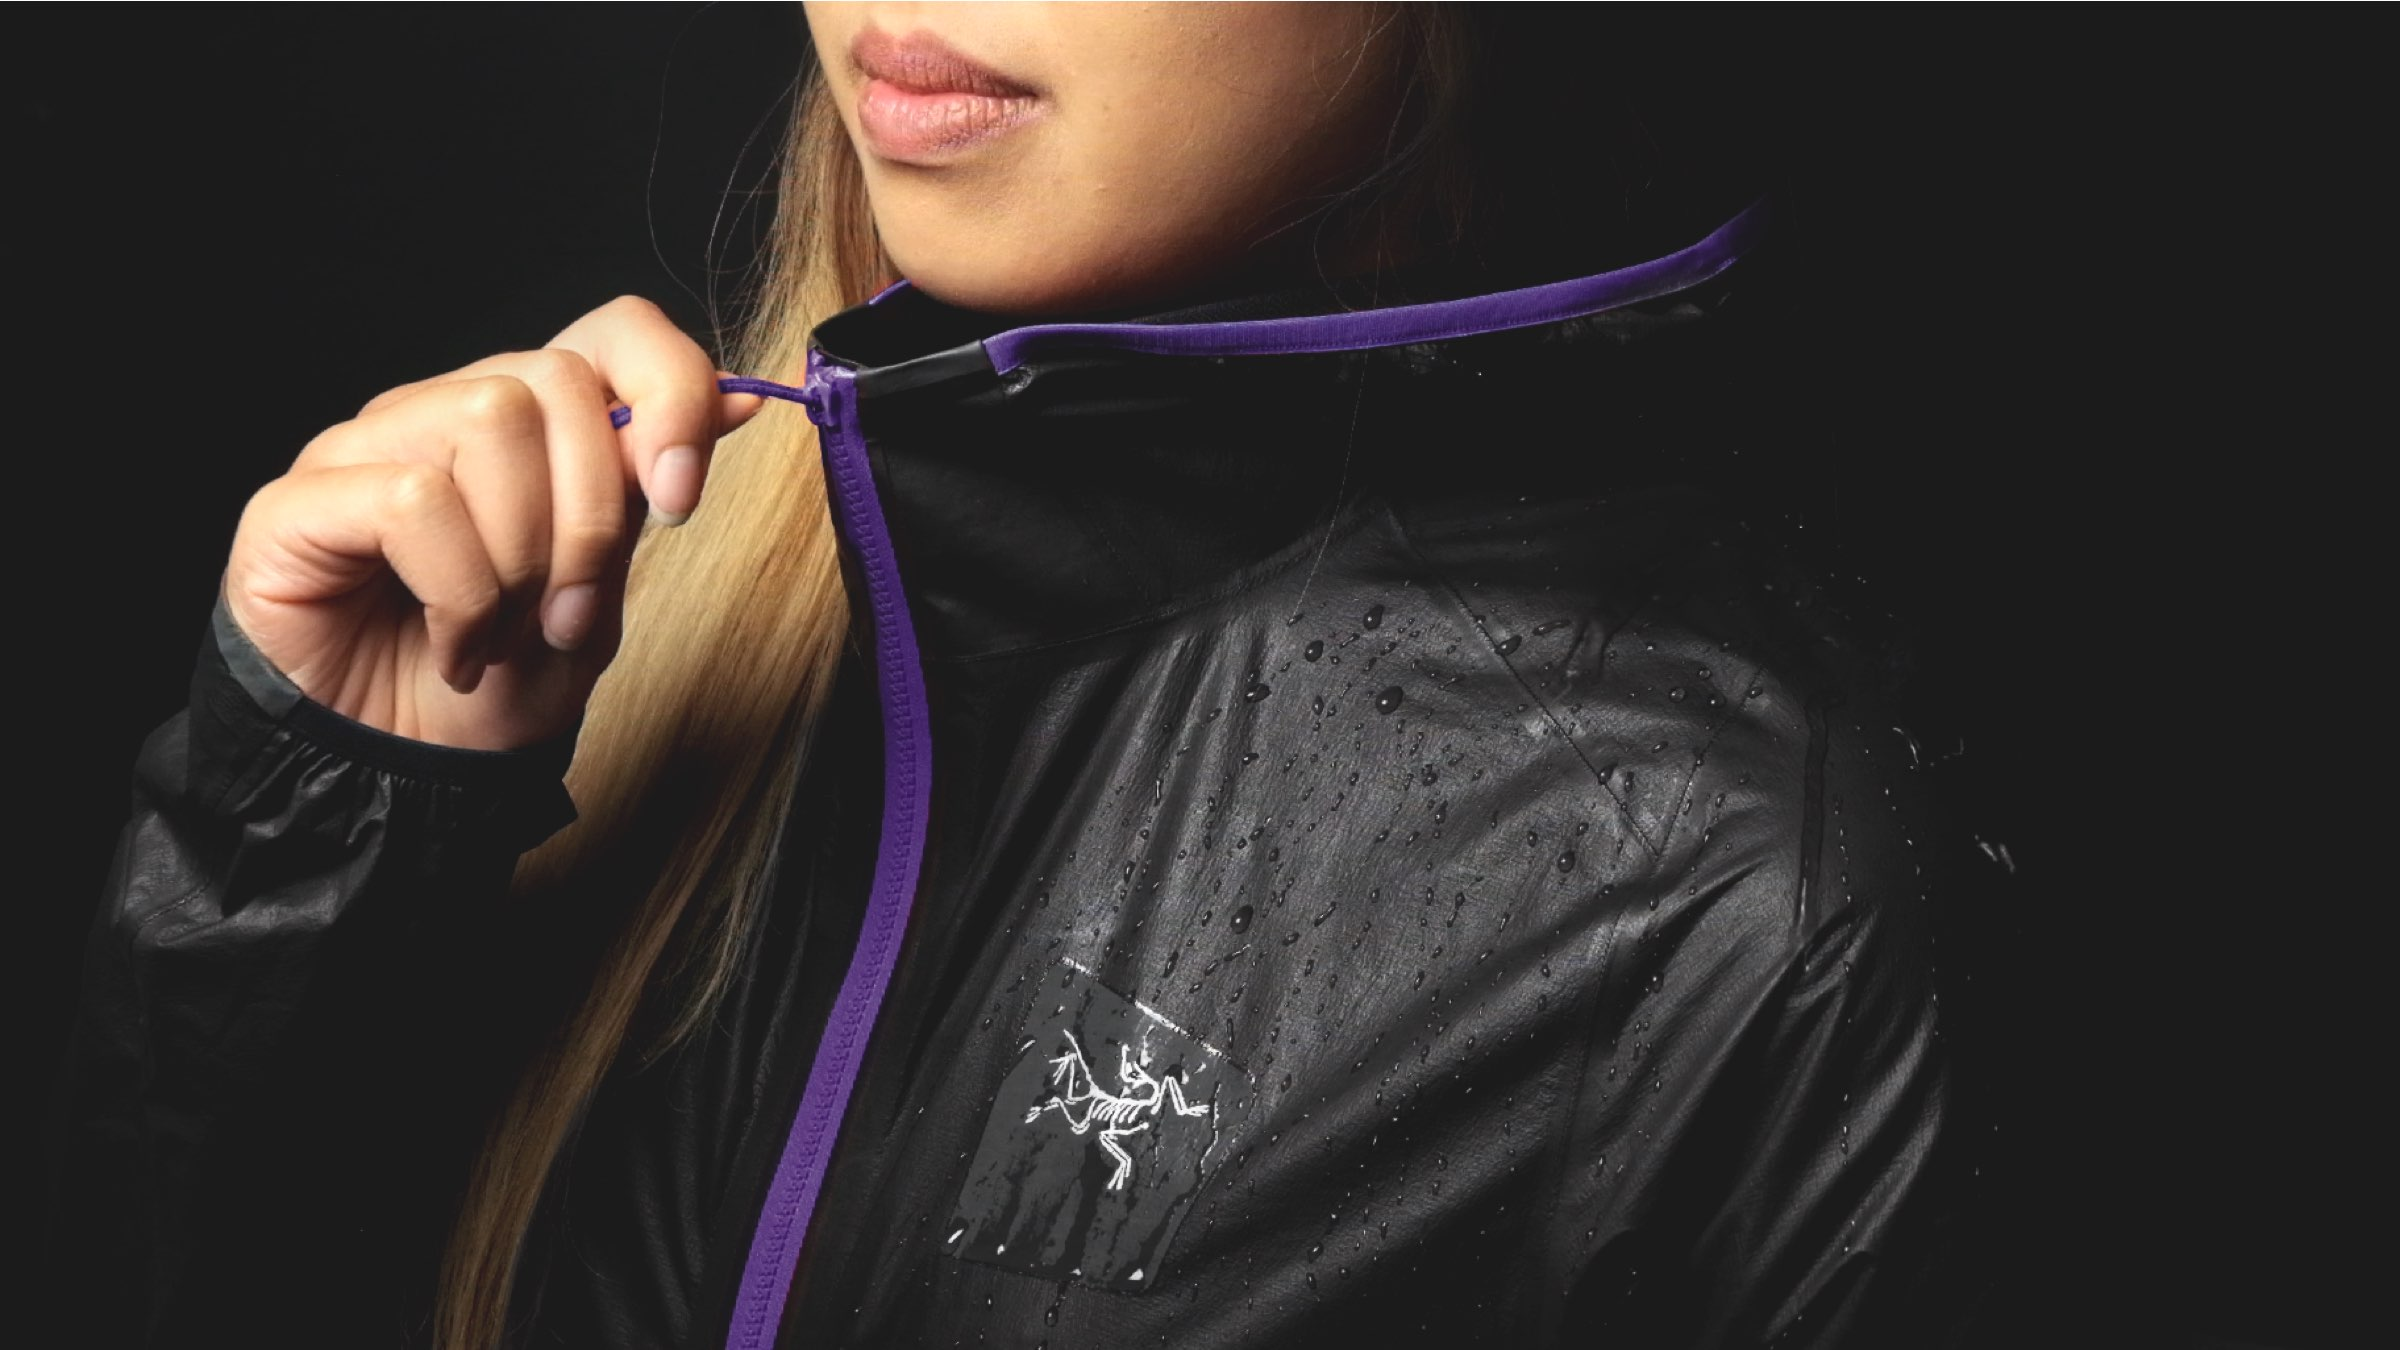 GORE-TEX Arcteryx Social Media